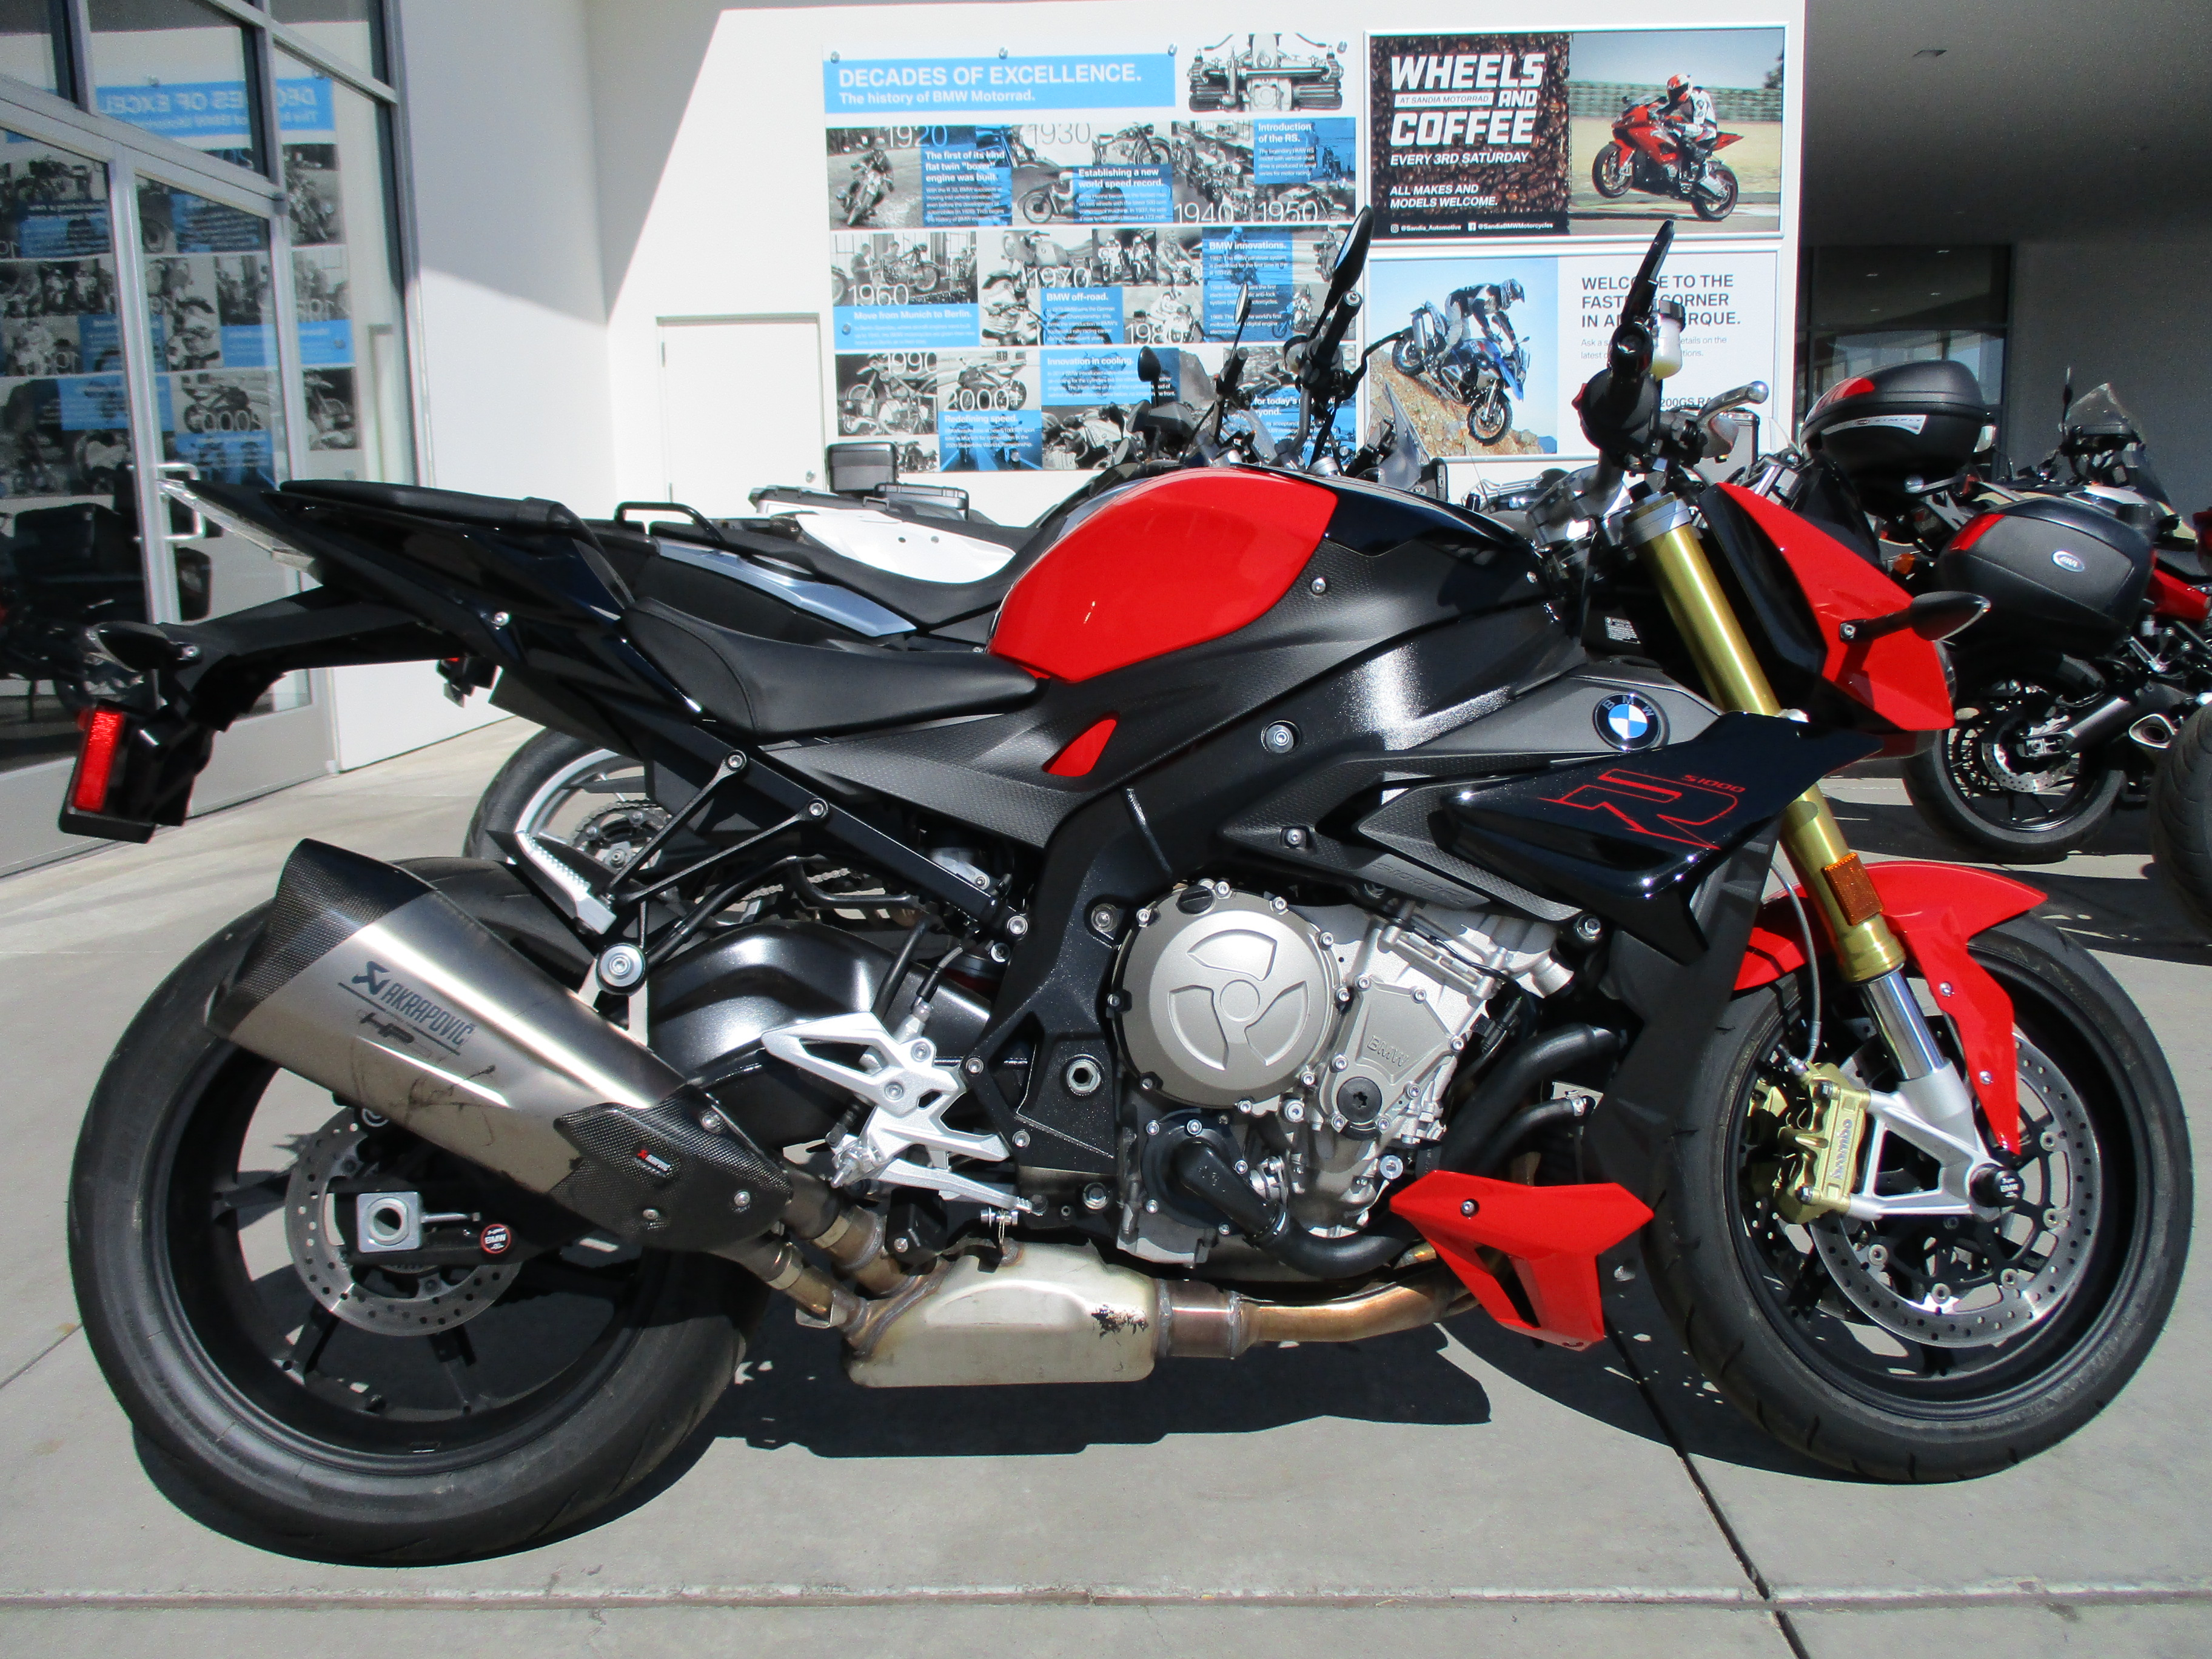 Pre-Owned Motorcycle Inventory - Sandia BMW Motorcycles ...